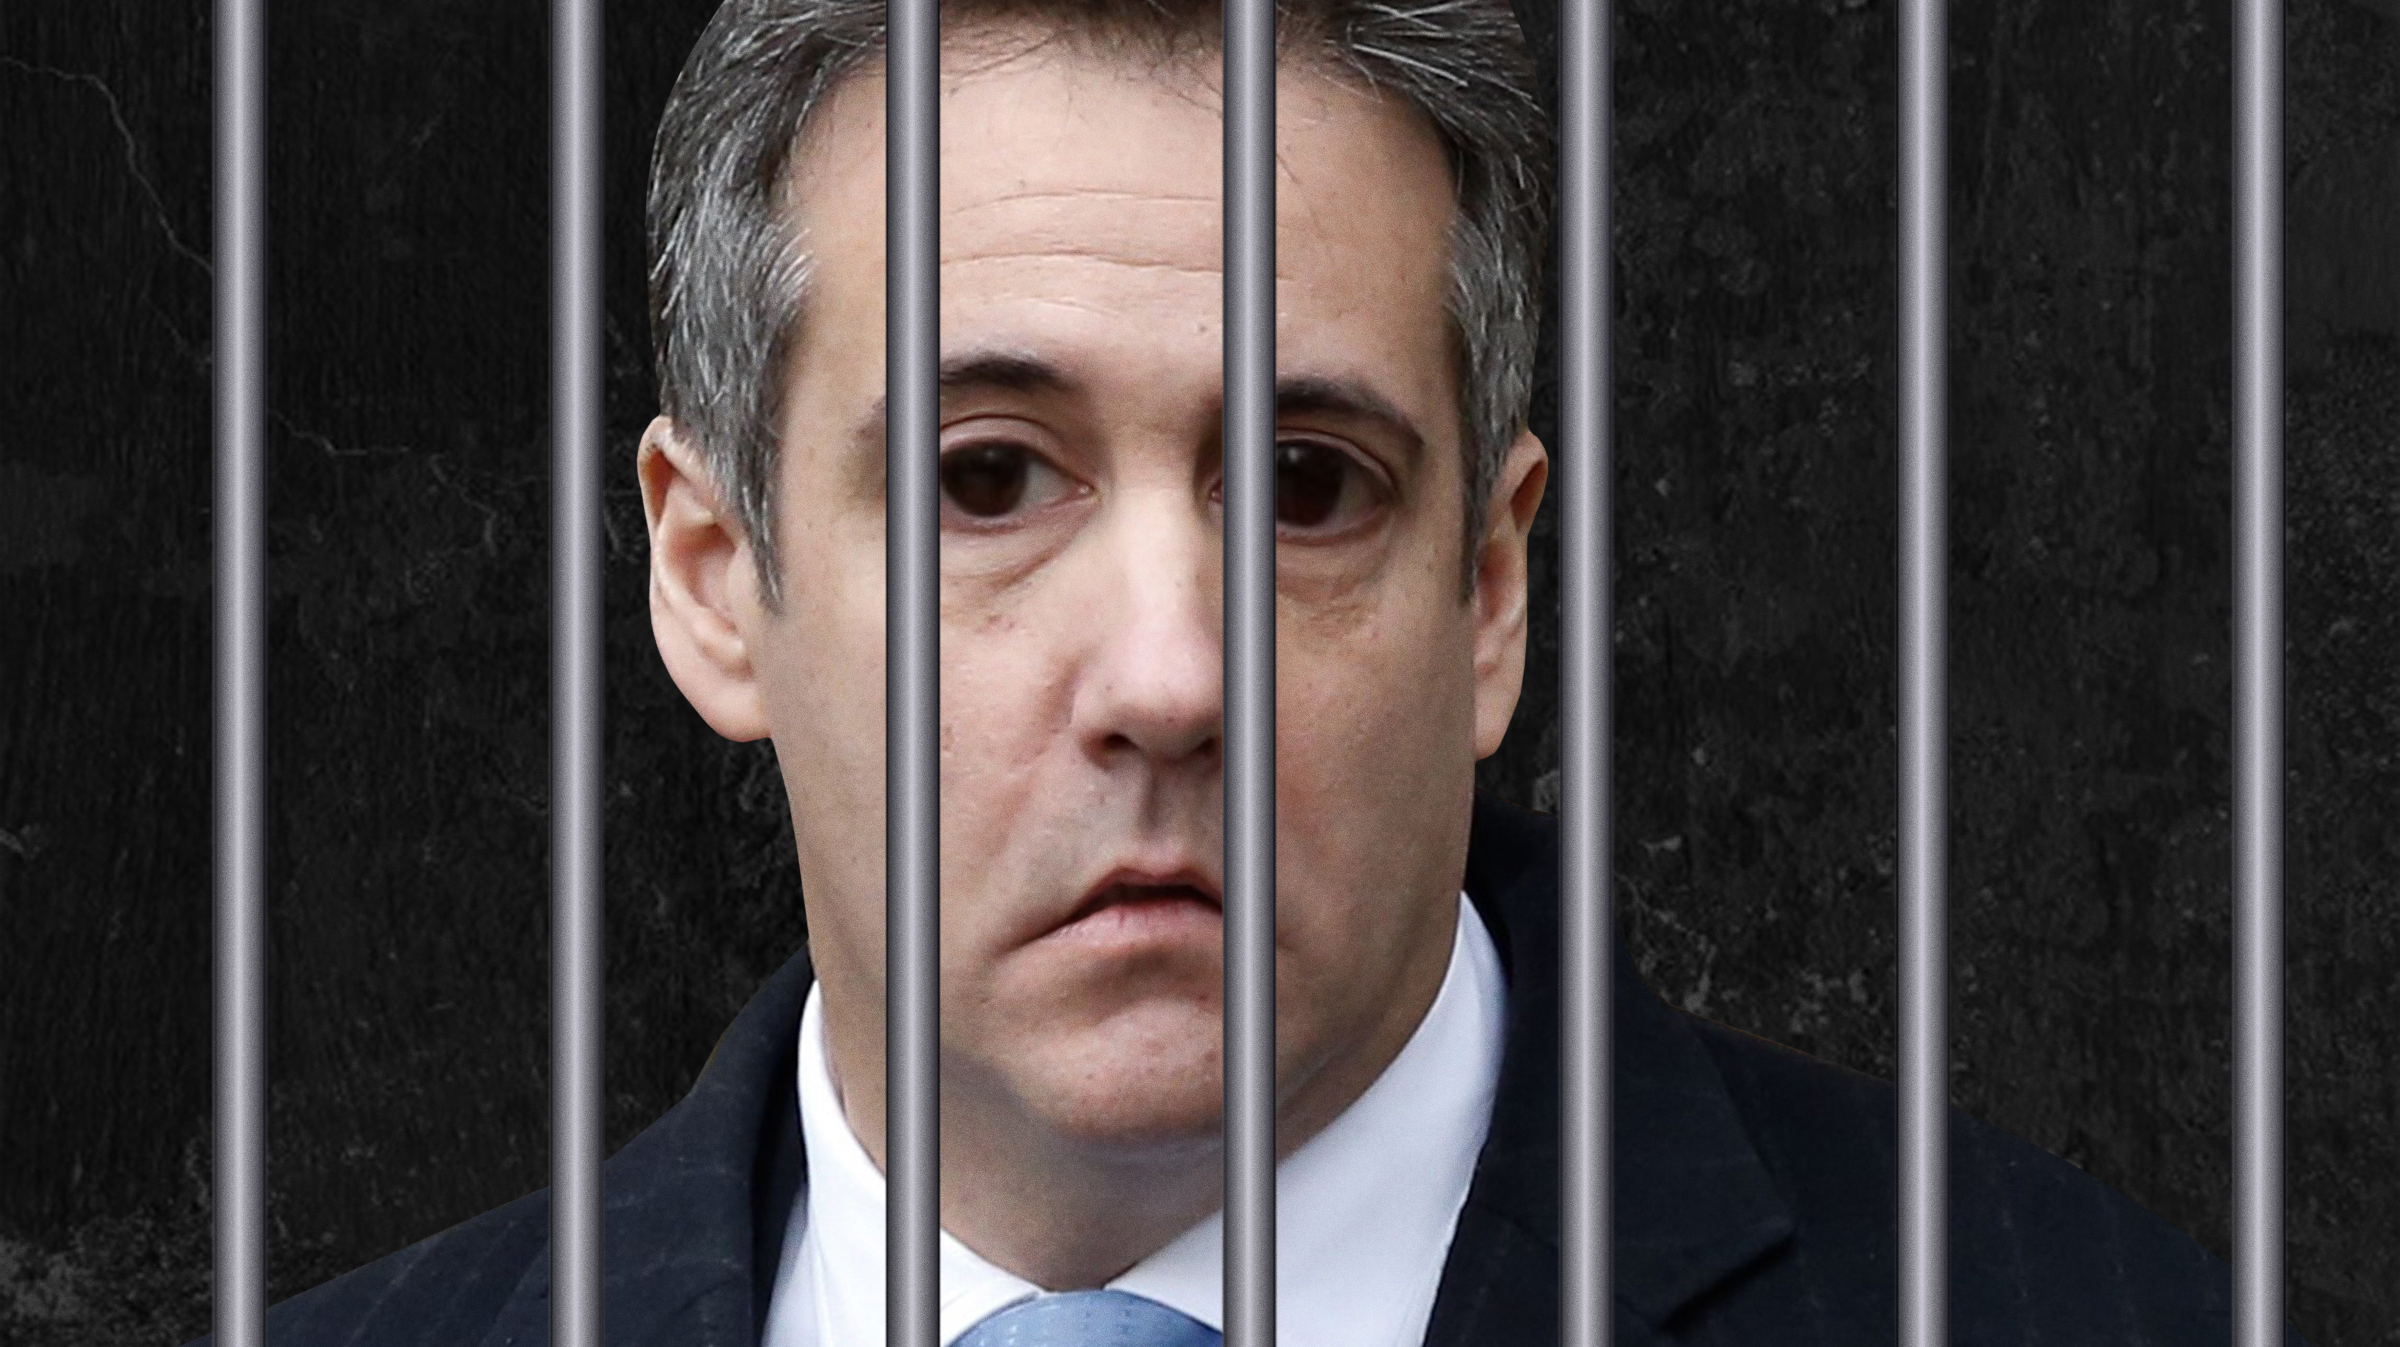 Image result for bad images of michael cohen prison